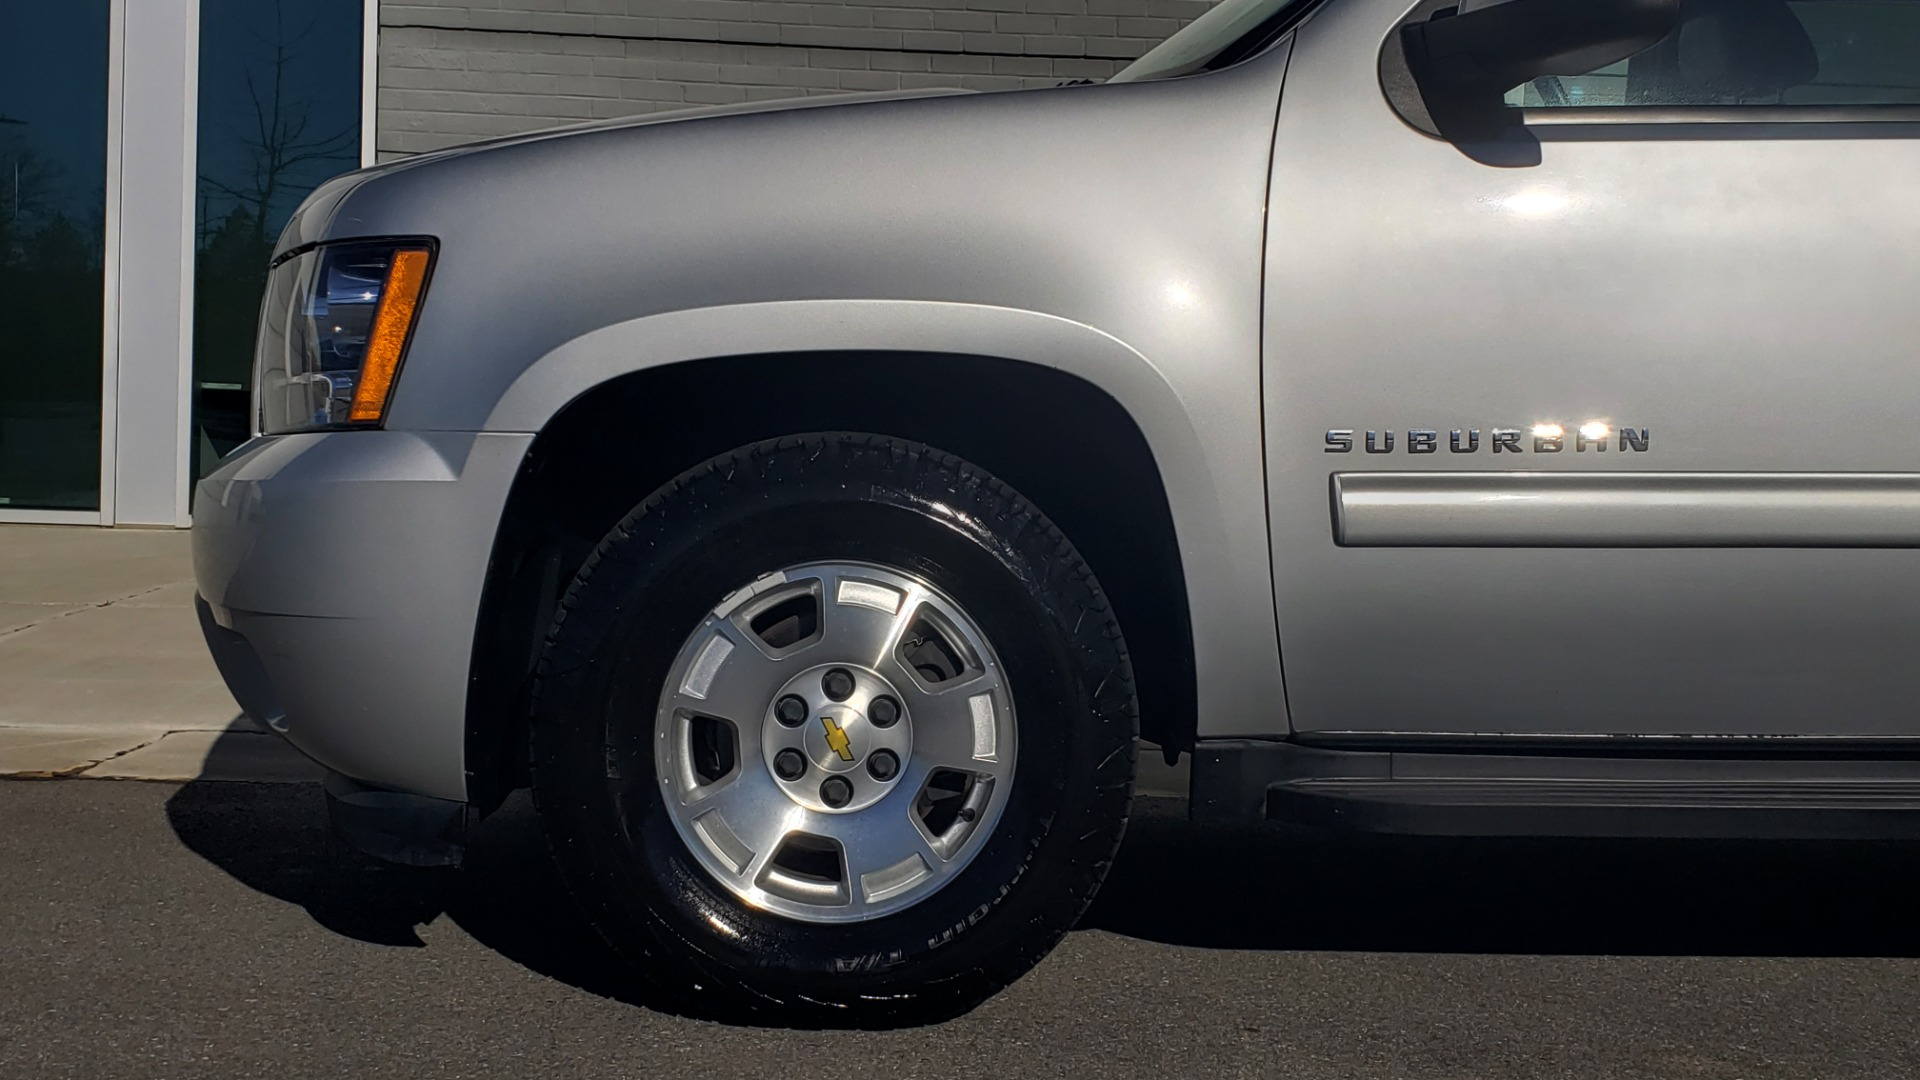 Used 2013 Chevrolet SUBURBAN LT / 2WD / 5.3L V8 / 6-SPD AUTO / LEATHER 3-ROW SEATS for sale Sold at Formula Imports in Charlotte NC 28227 75